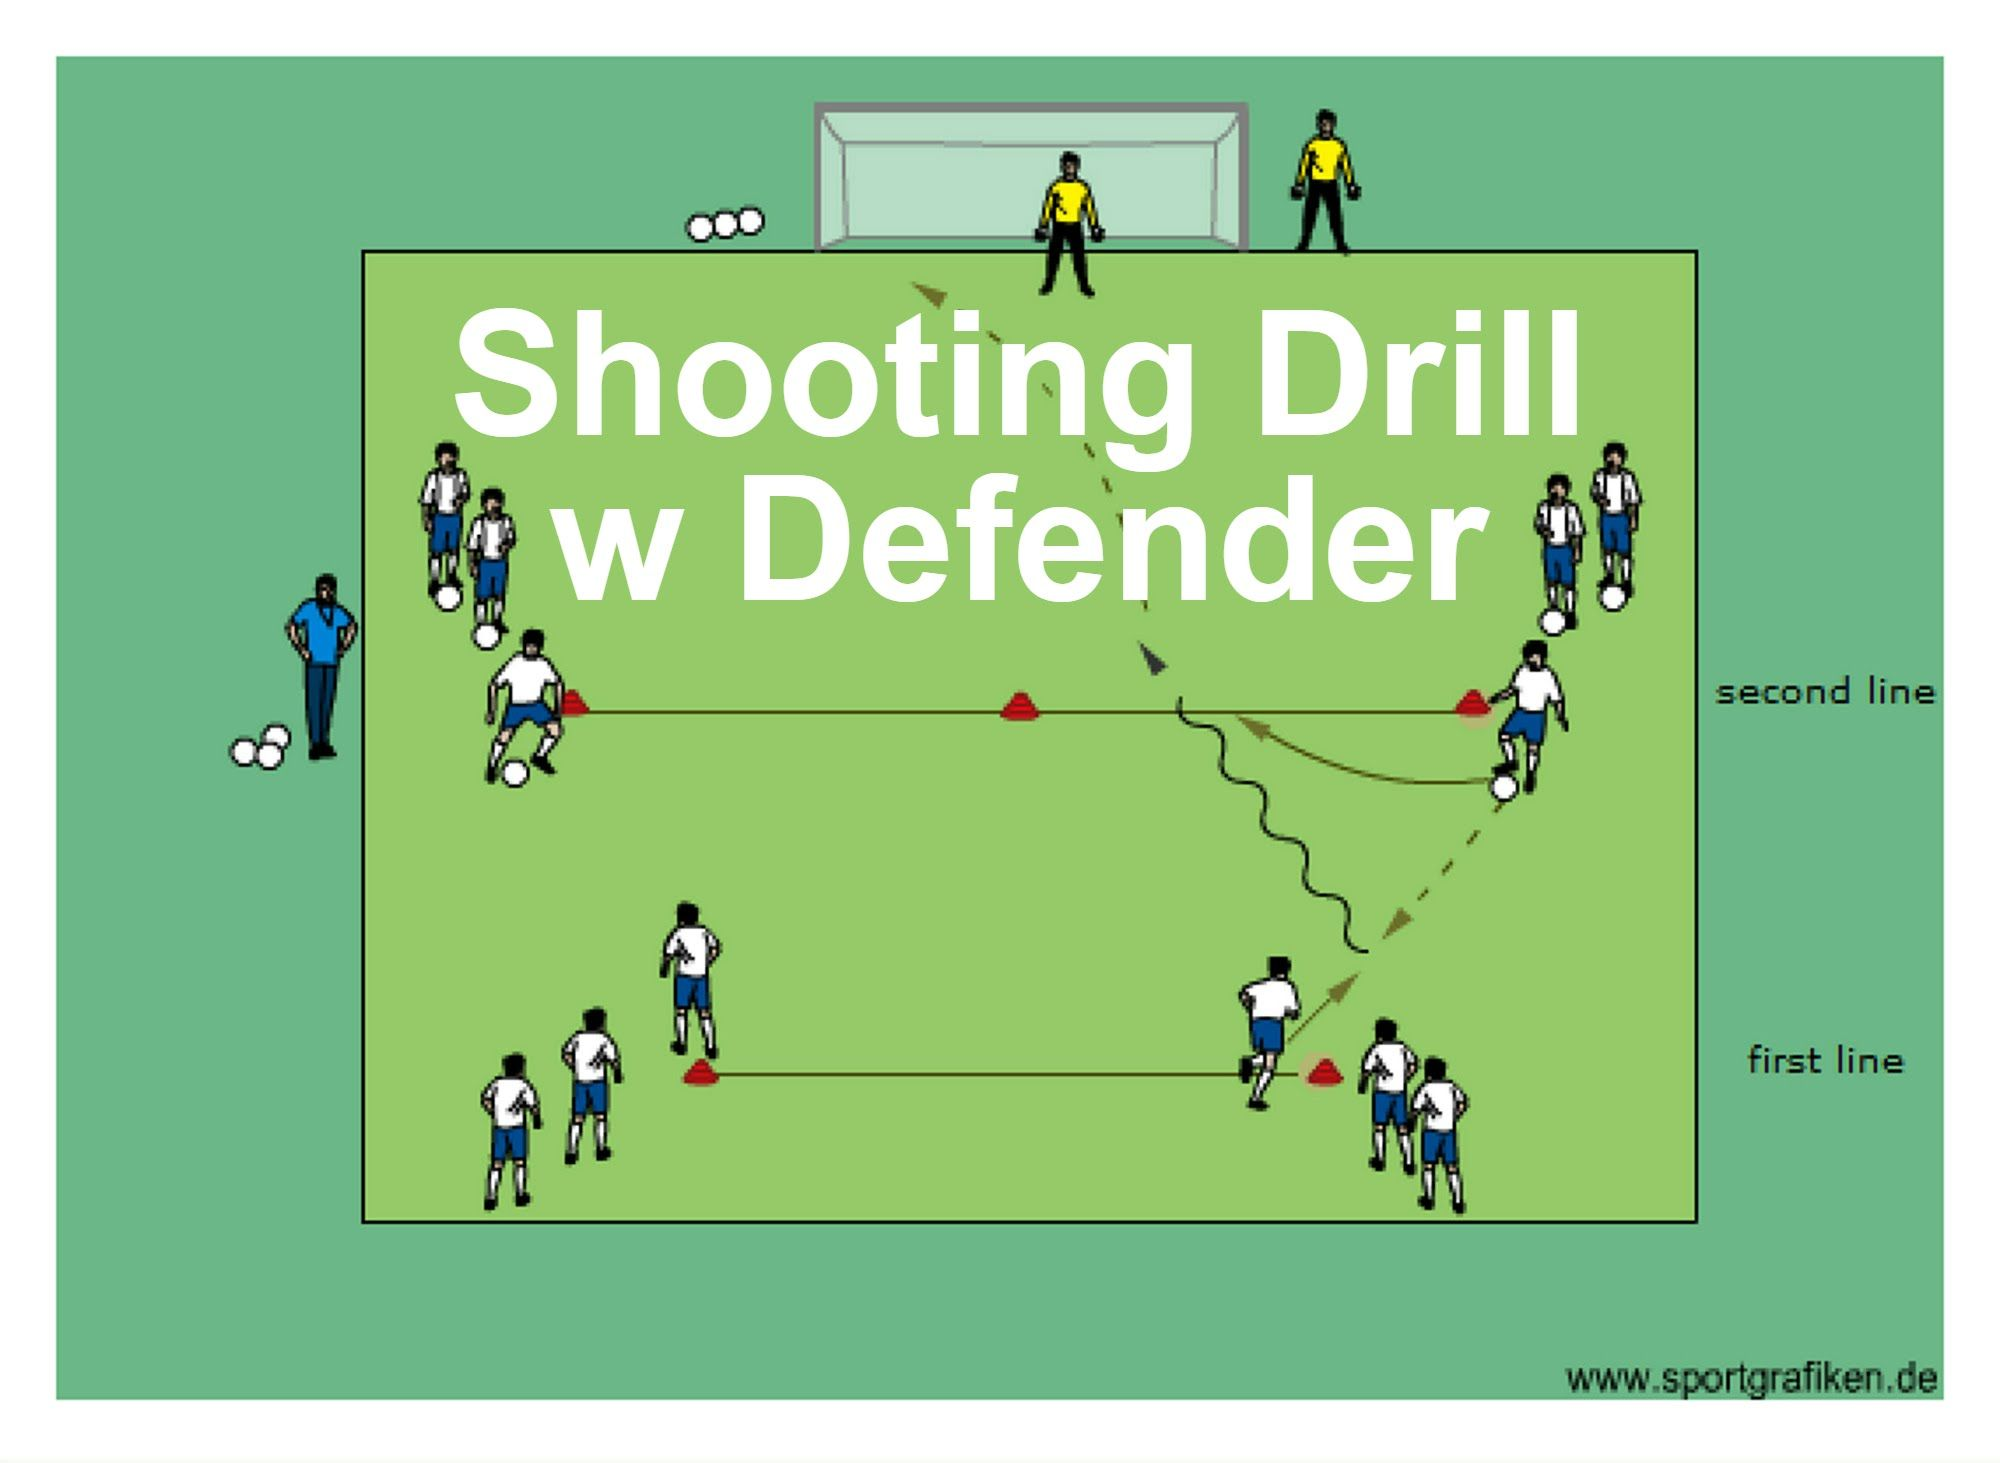 Soccer Shooting Techniques And Drills Soccer Drills For Kids Soccer Drills Soccer Training Program